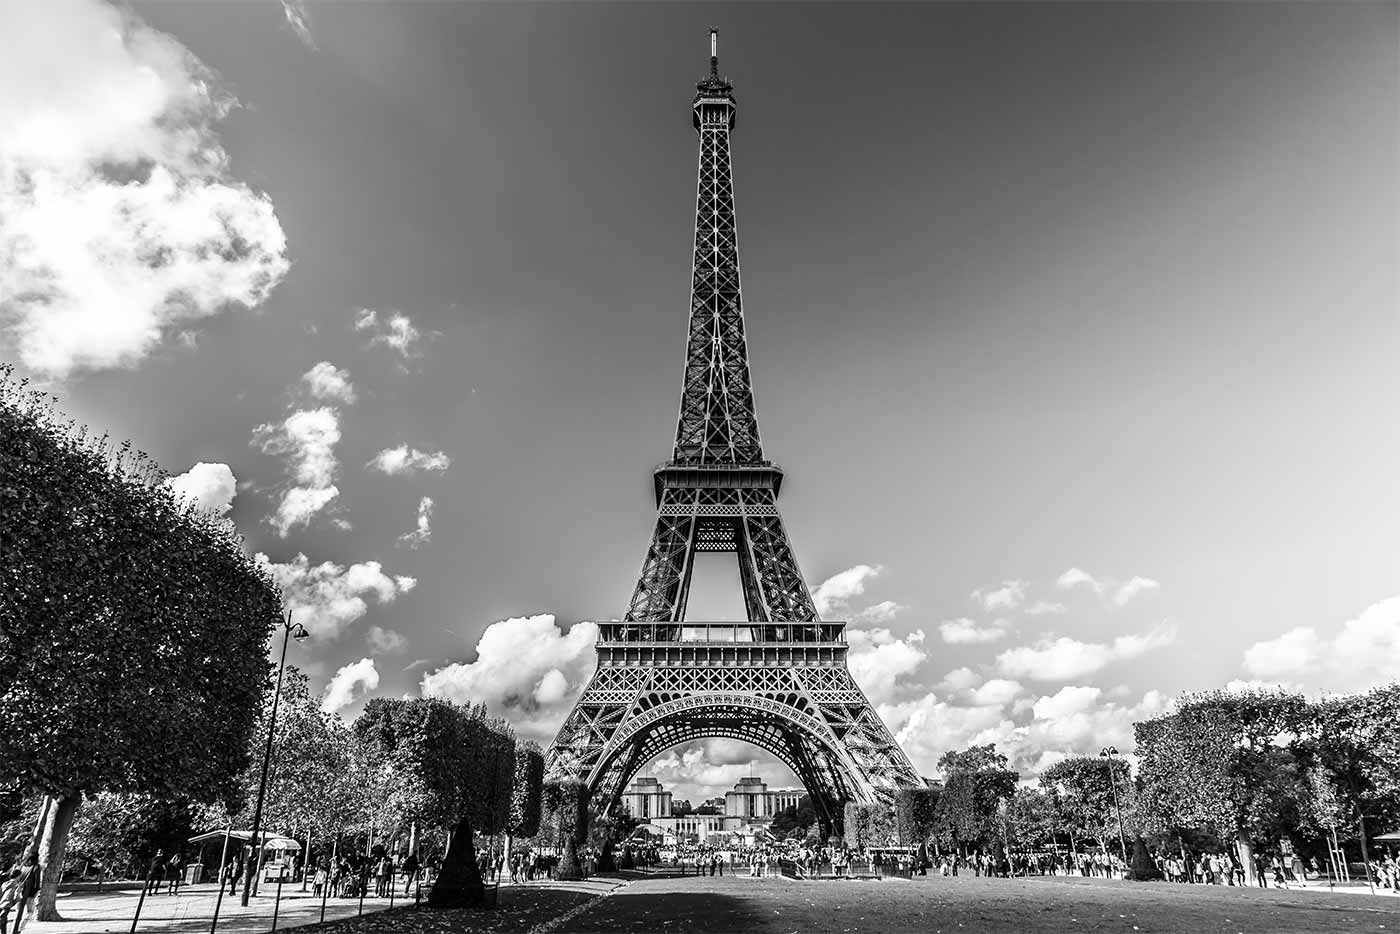 paris en black white kunst panorama bild aus paris moderne fotokunst panorama pop art. Black Bedroom Furniture Sets. Home Design Ideas